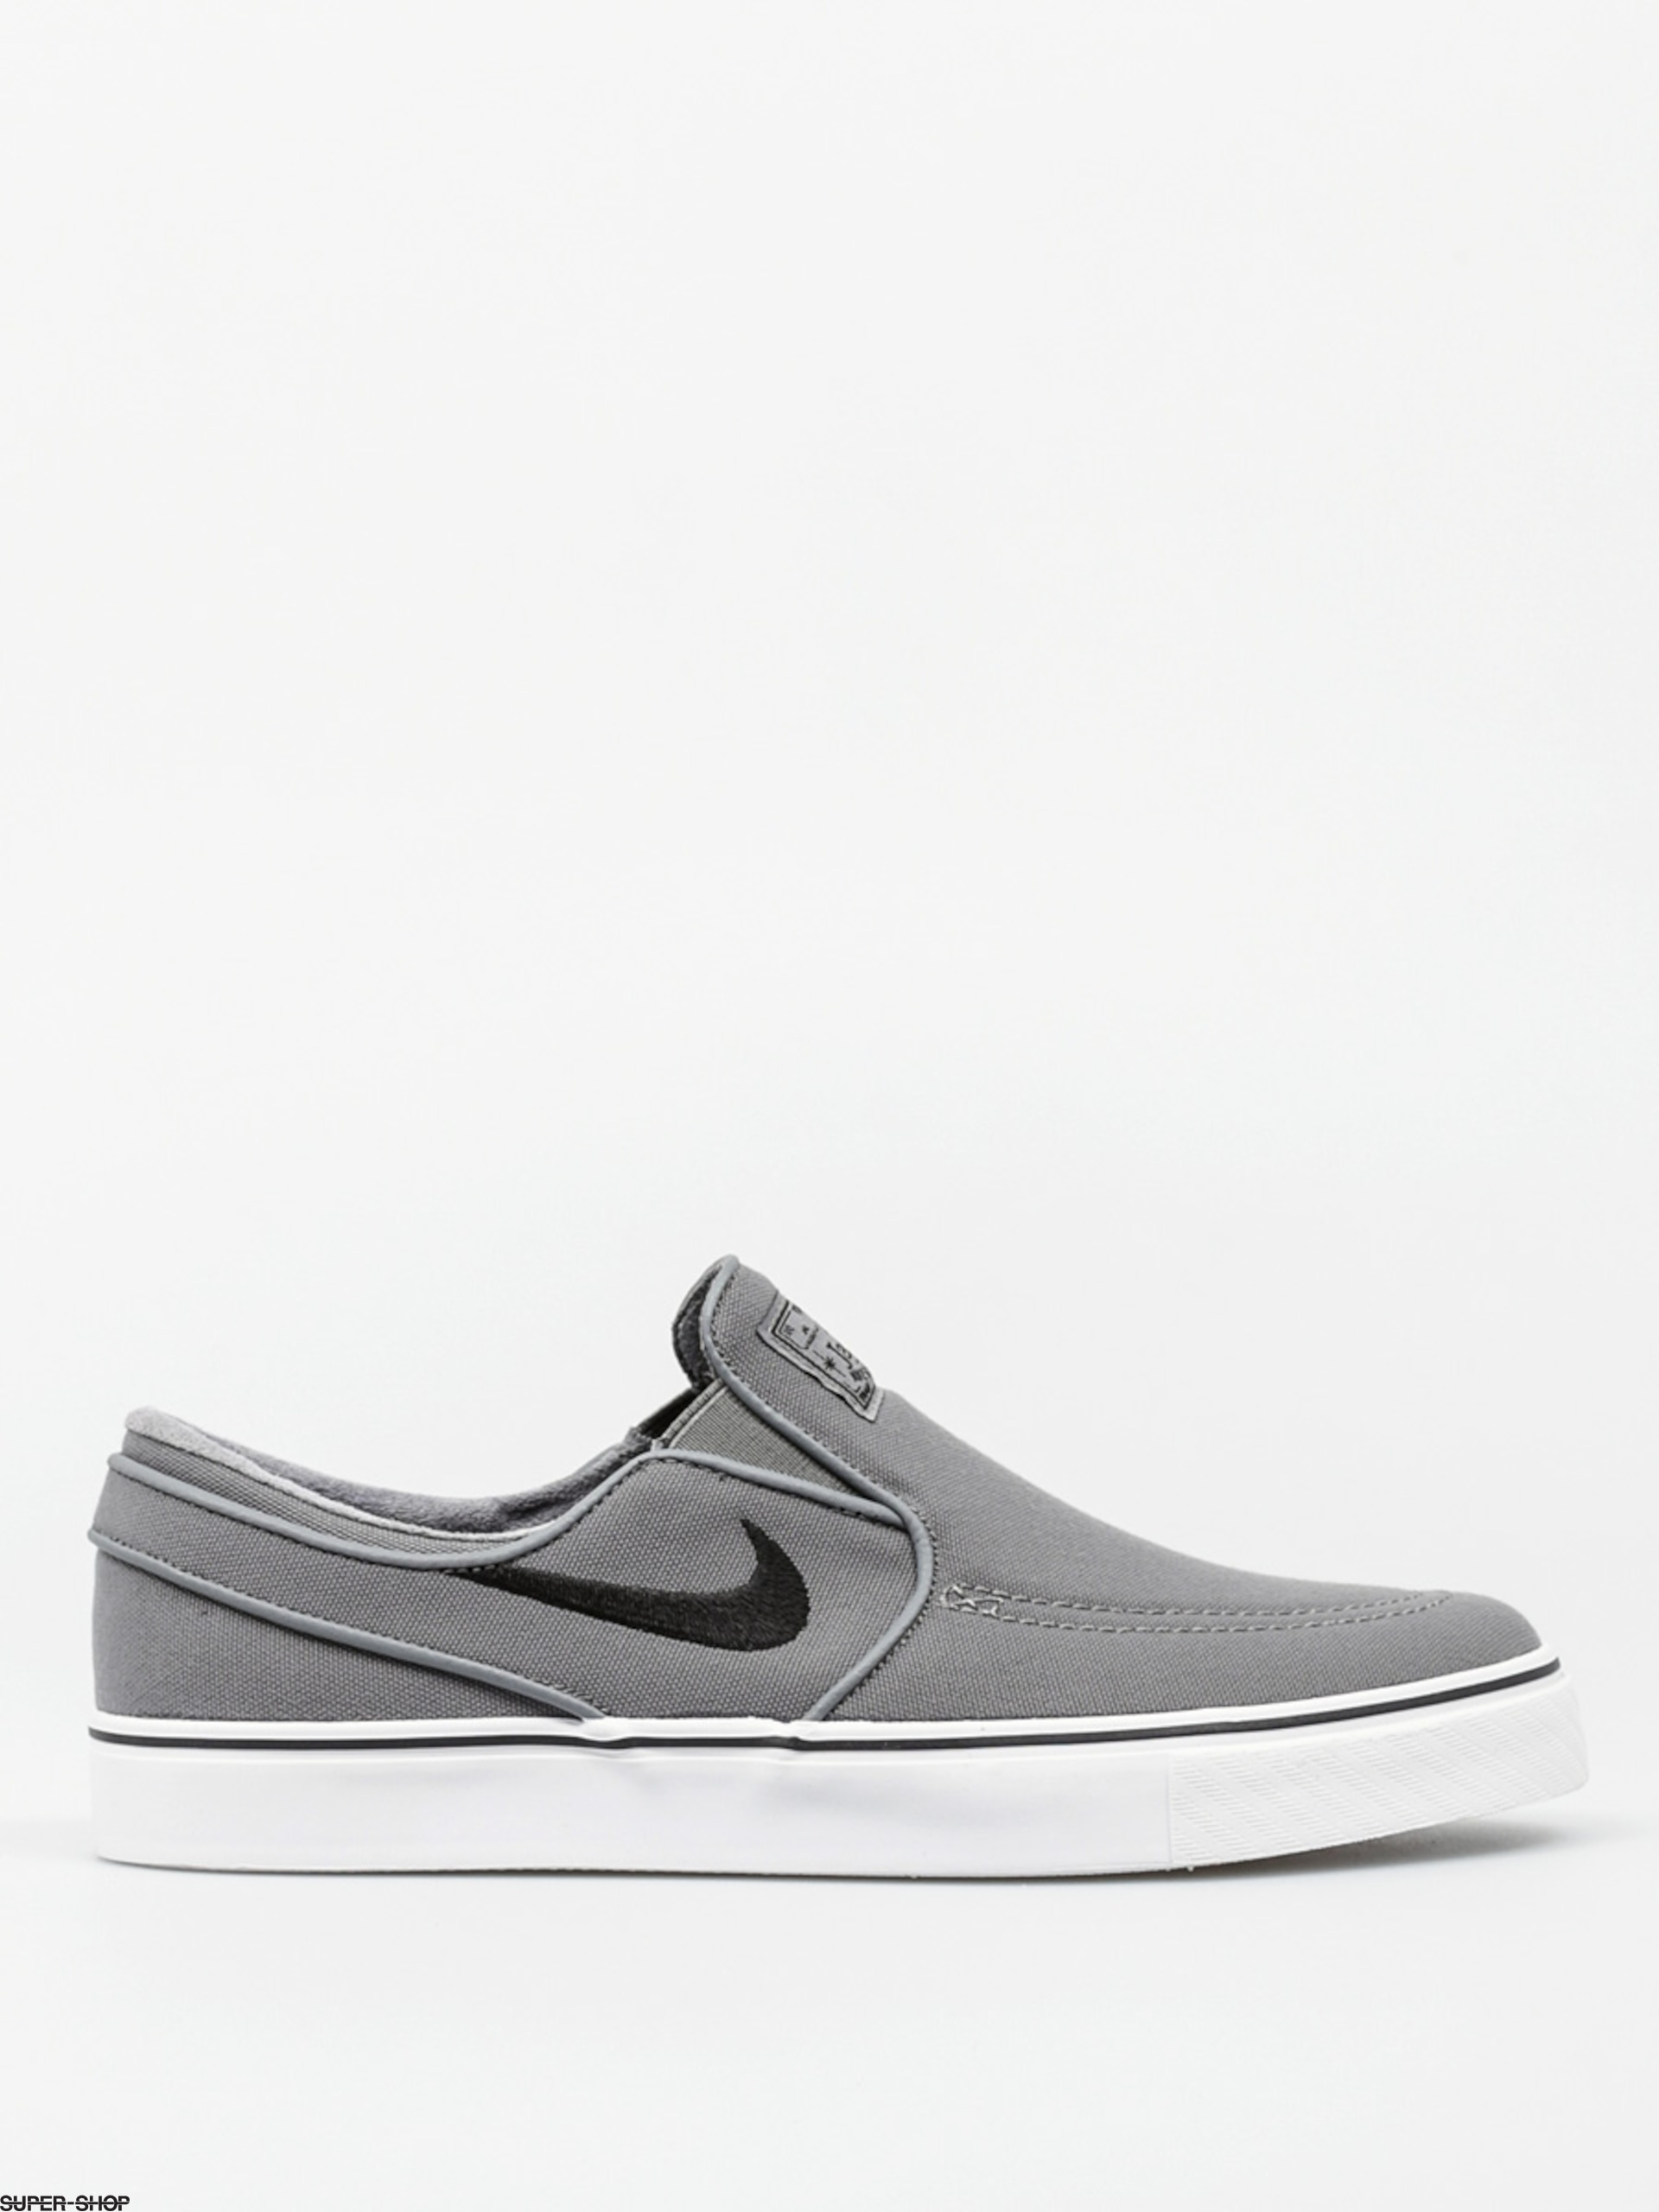 5de653c26b6b Nike SB Shoes Zoom Stefan Janoski Slip Cnvs (cool grey black white)